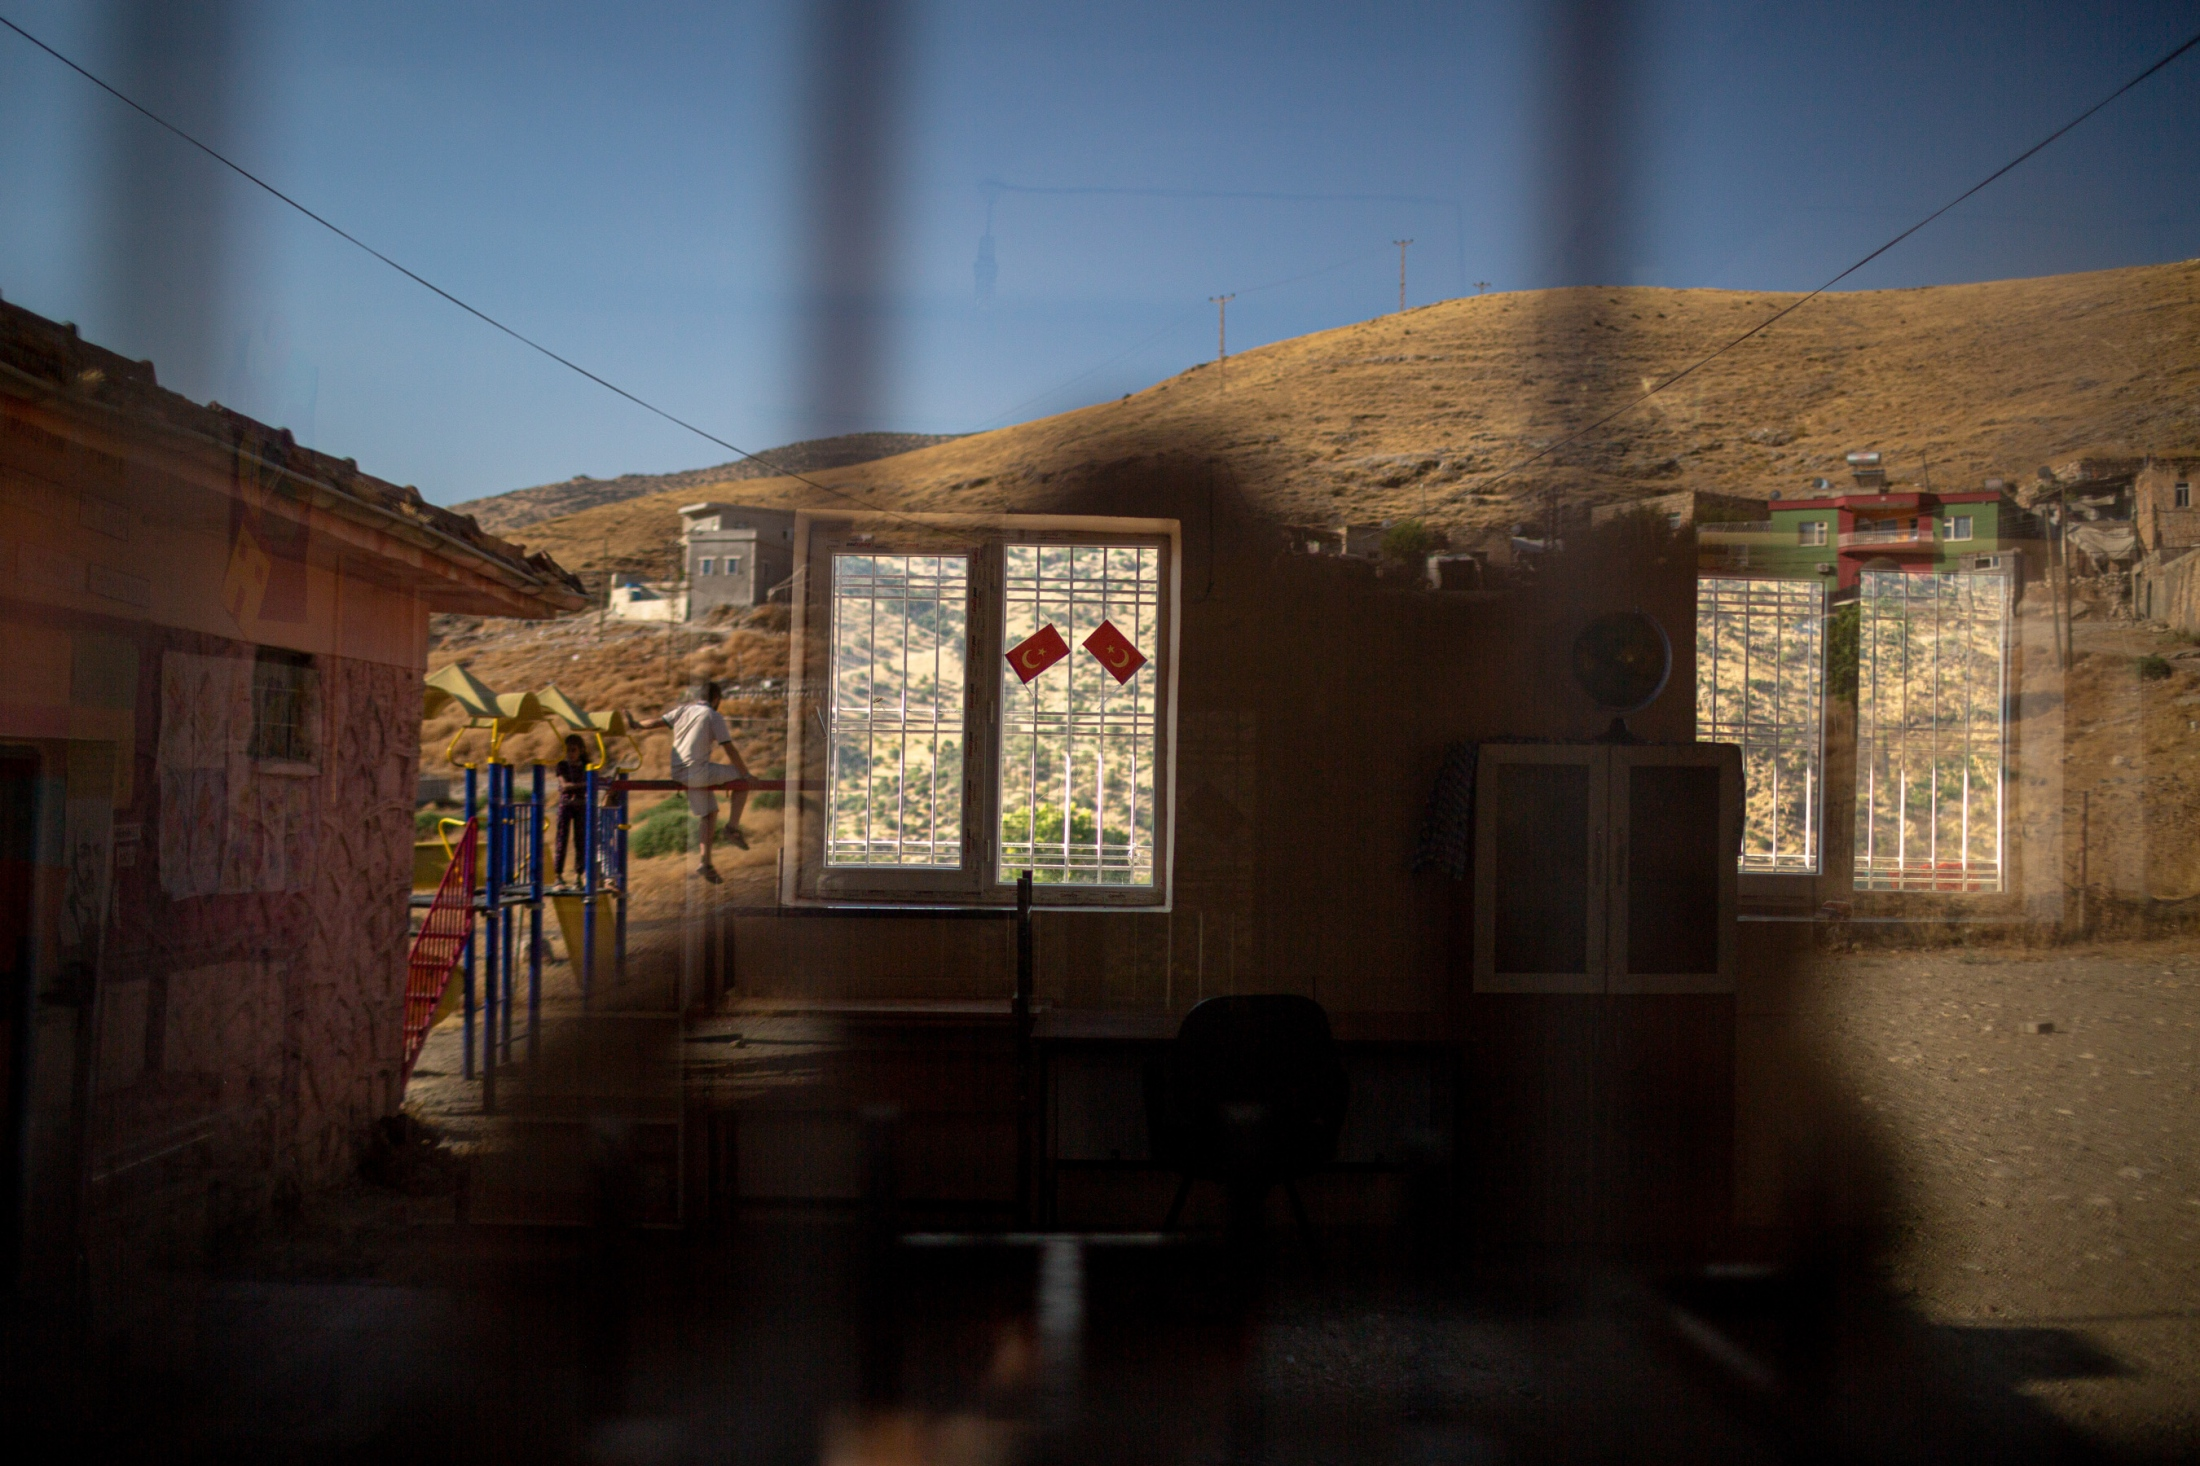 The reflection of a child on a school window during the summer break is seen in a village close to Hasankeyf which is located in the flood zone and is slated to be submerged once the dam waters arrive.